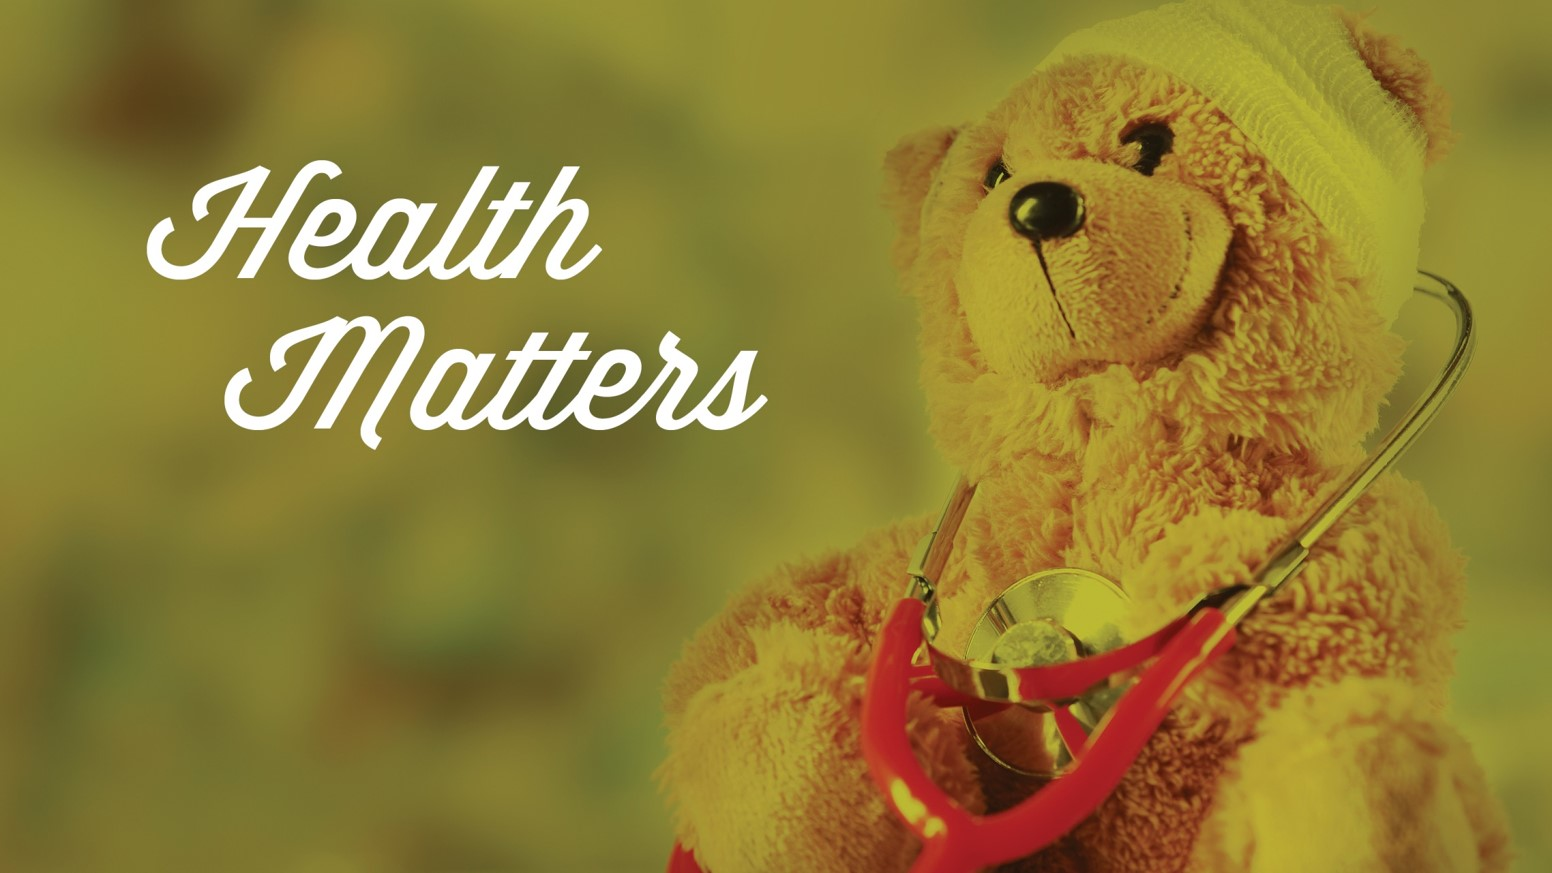 - Health matters because people matter. We are in the business of preserving birthdays – using insurance and benefits as a vehicle to create positive change that saves lives while also protecting our clients' business.